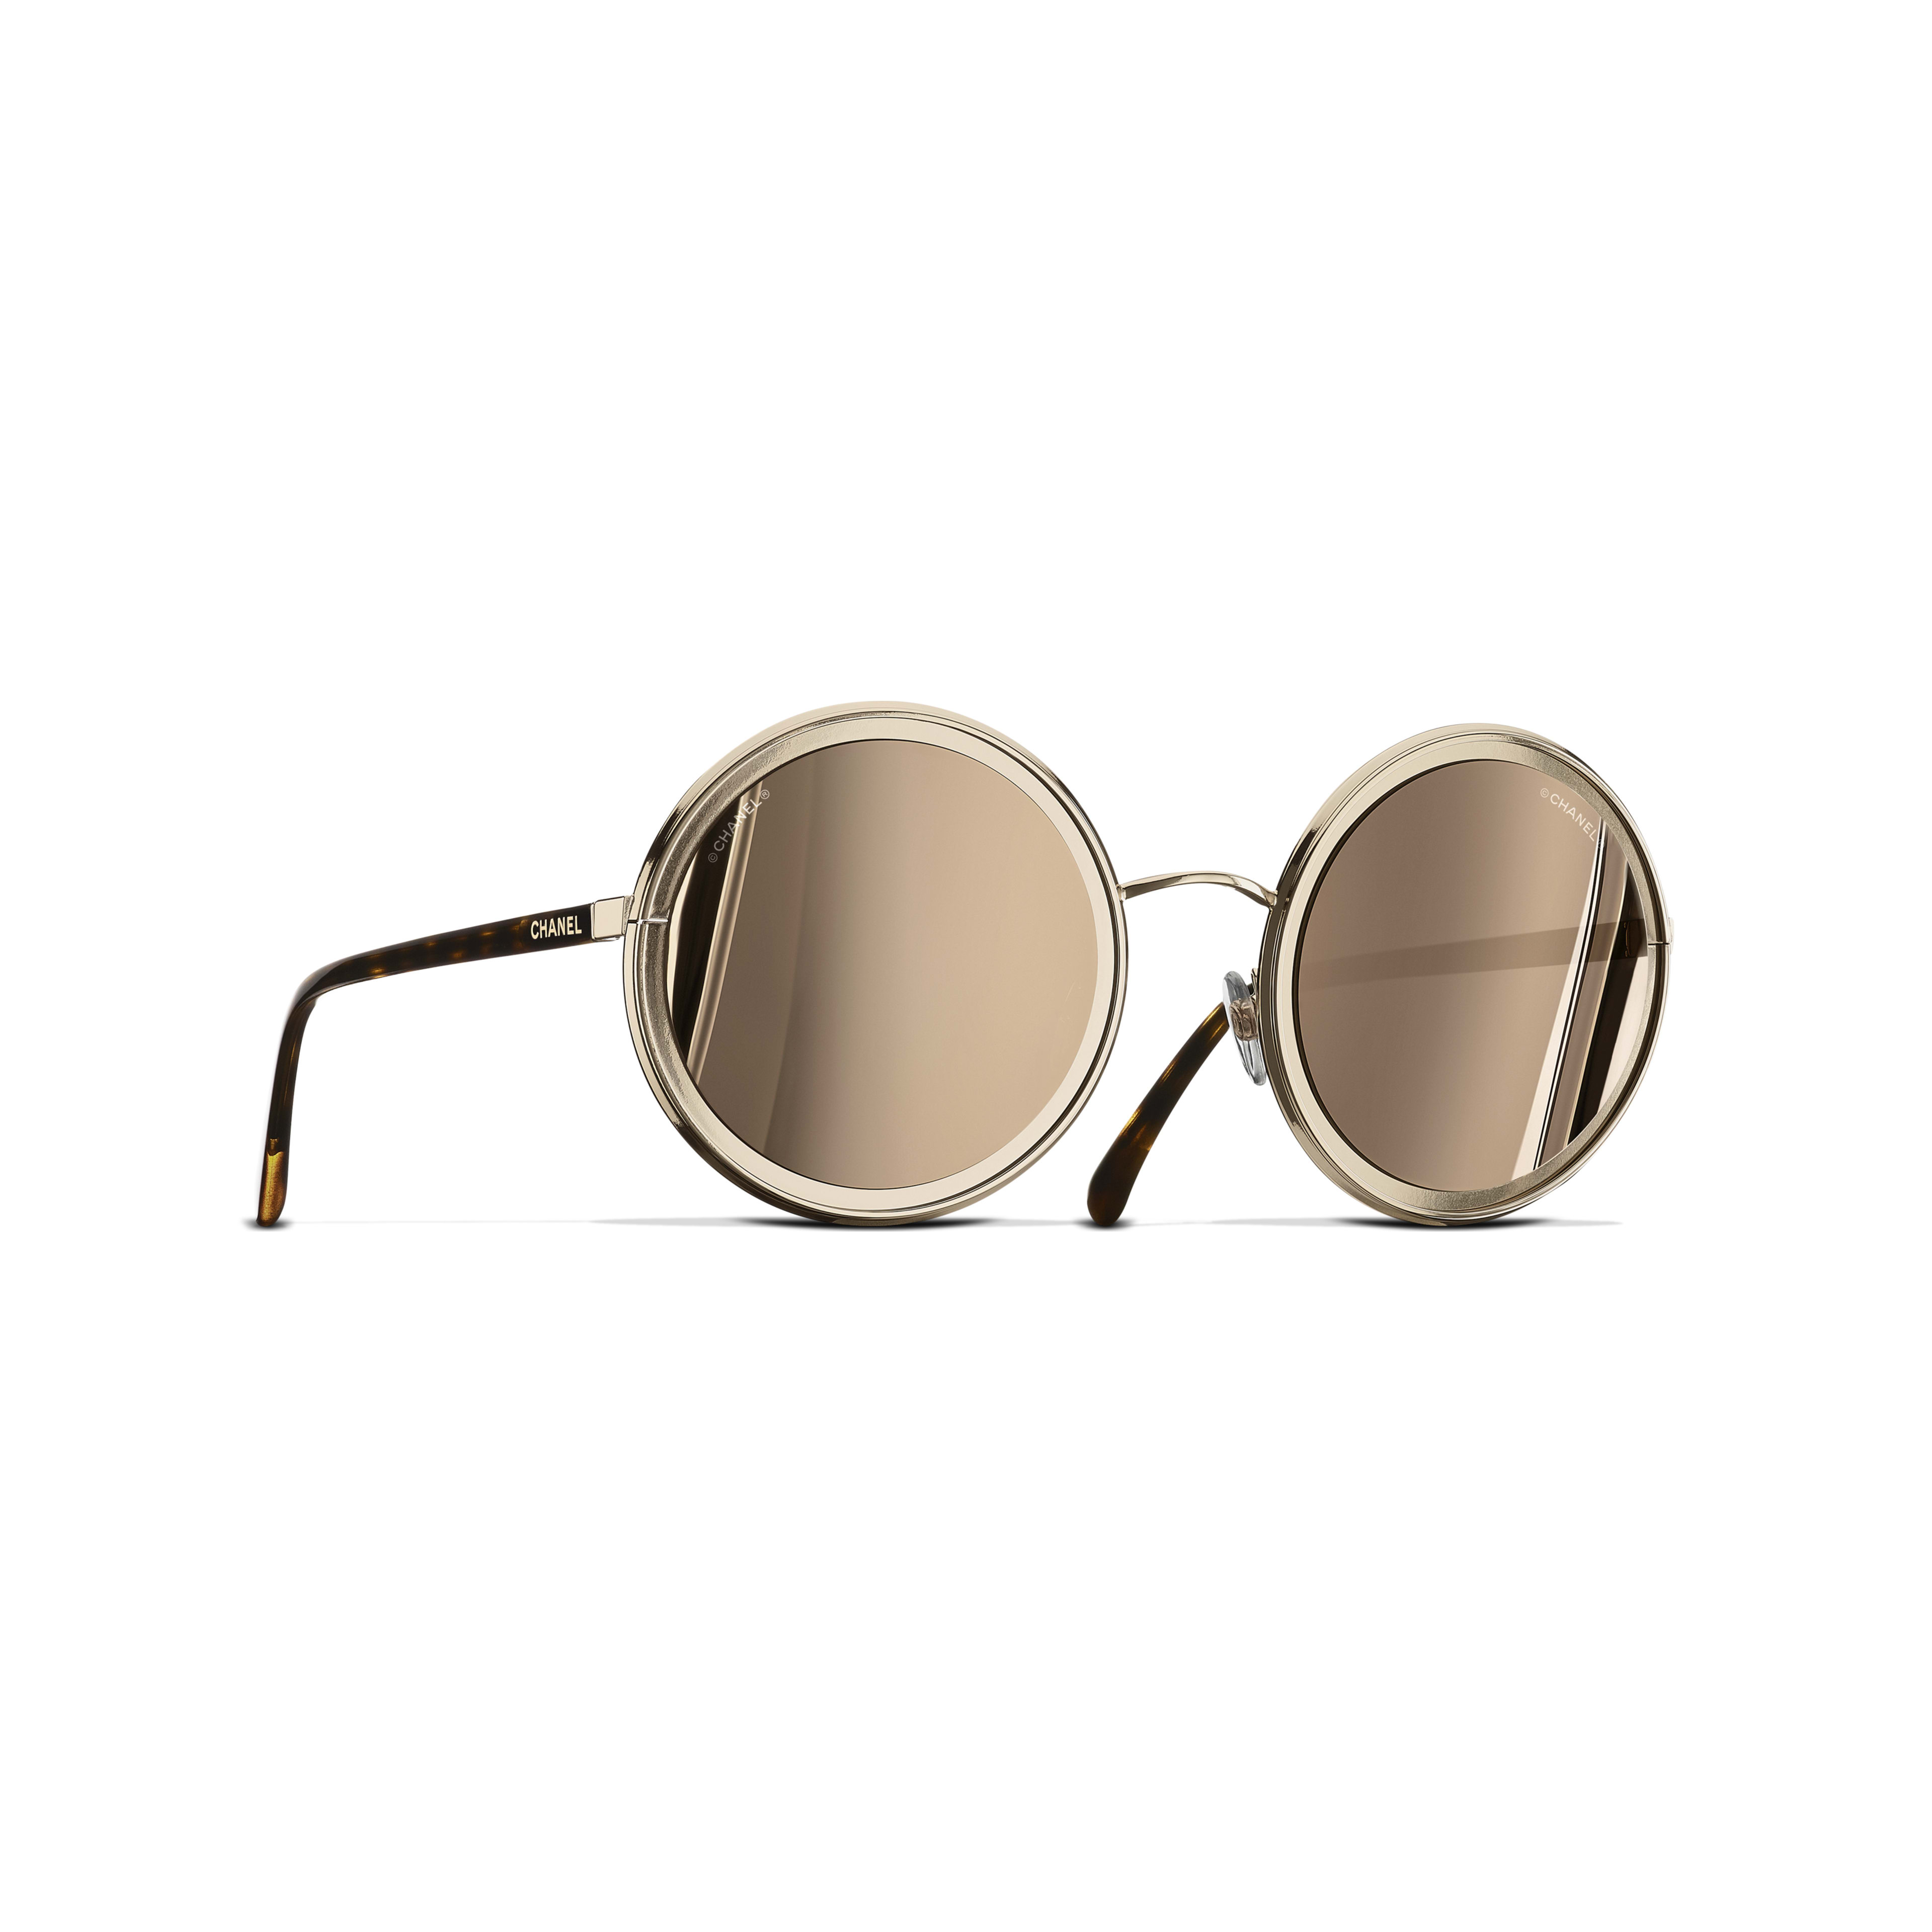 Round Sunglasses - Gold - Metal - 18-Karat Gold Lenses - Default view - see full sized version